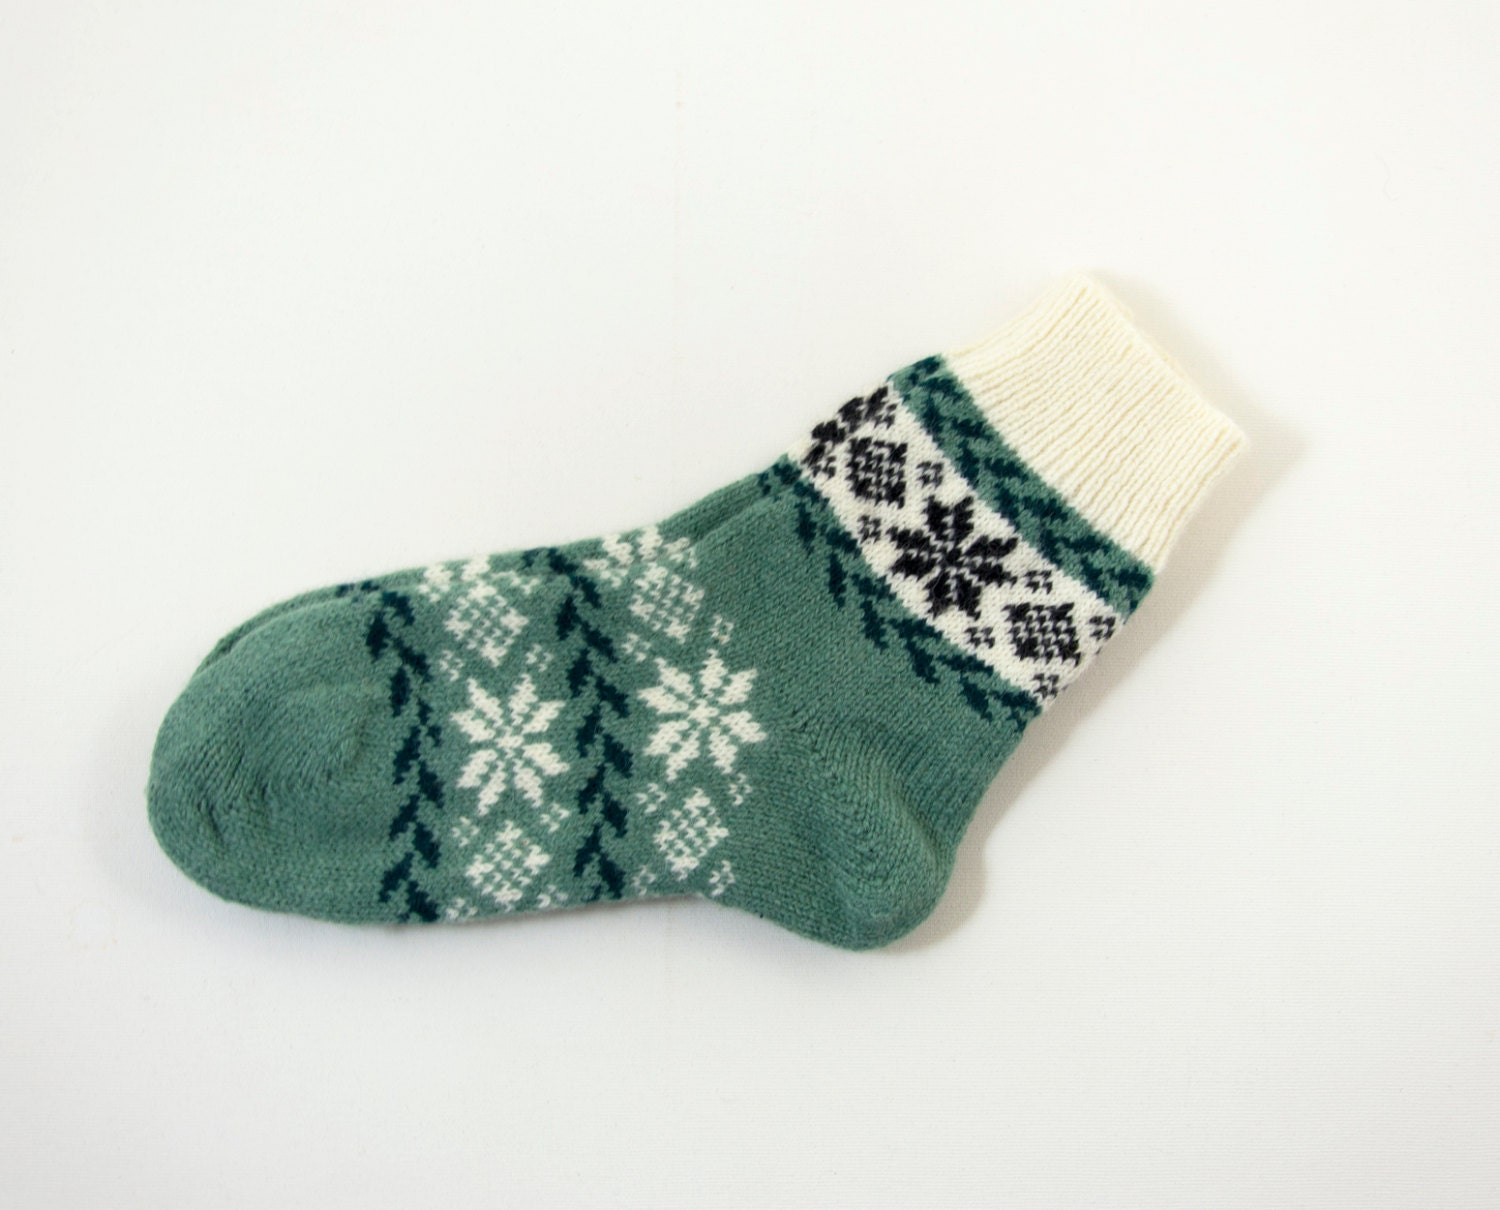 Knitting Pattern Wool Socks : Knitted Wool Socks Folk Pattern Socks Teal by UnlimitedCraftworks